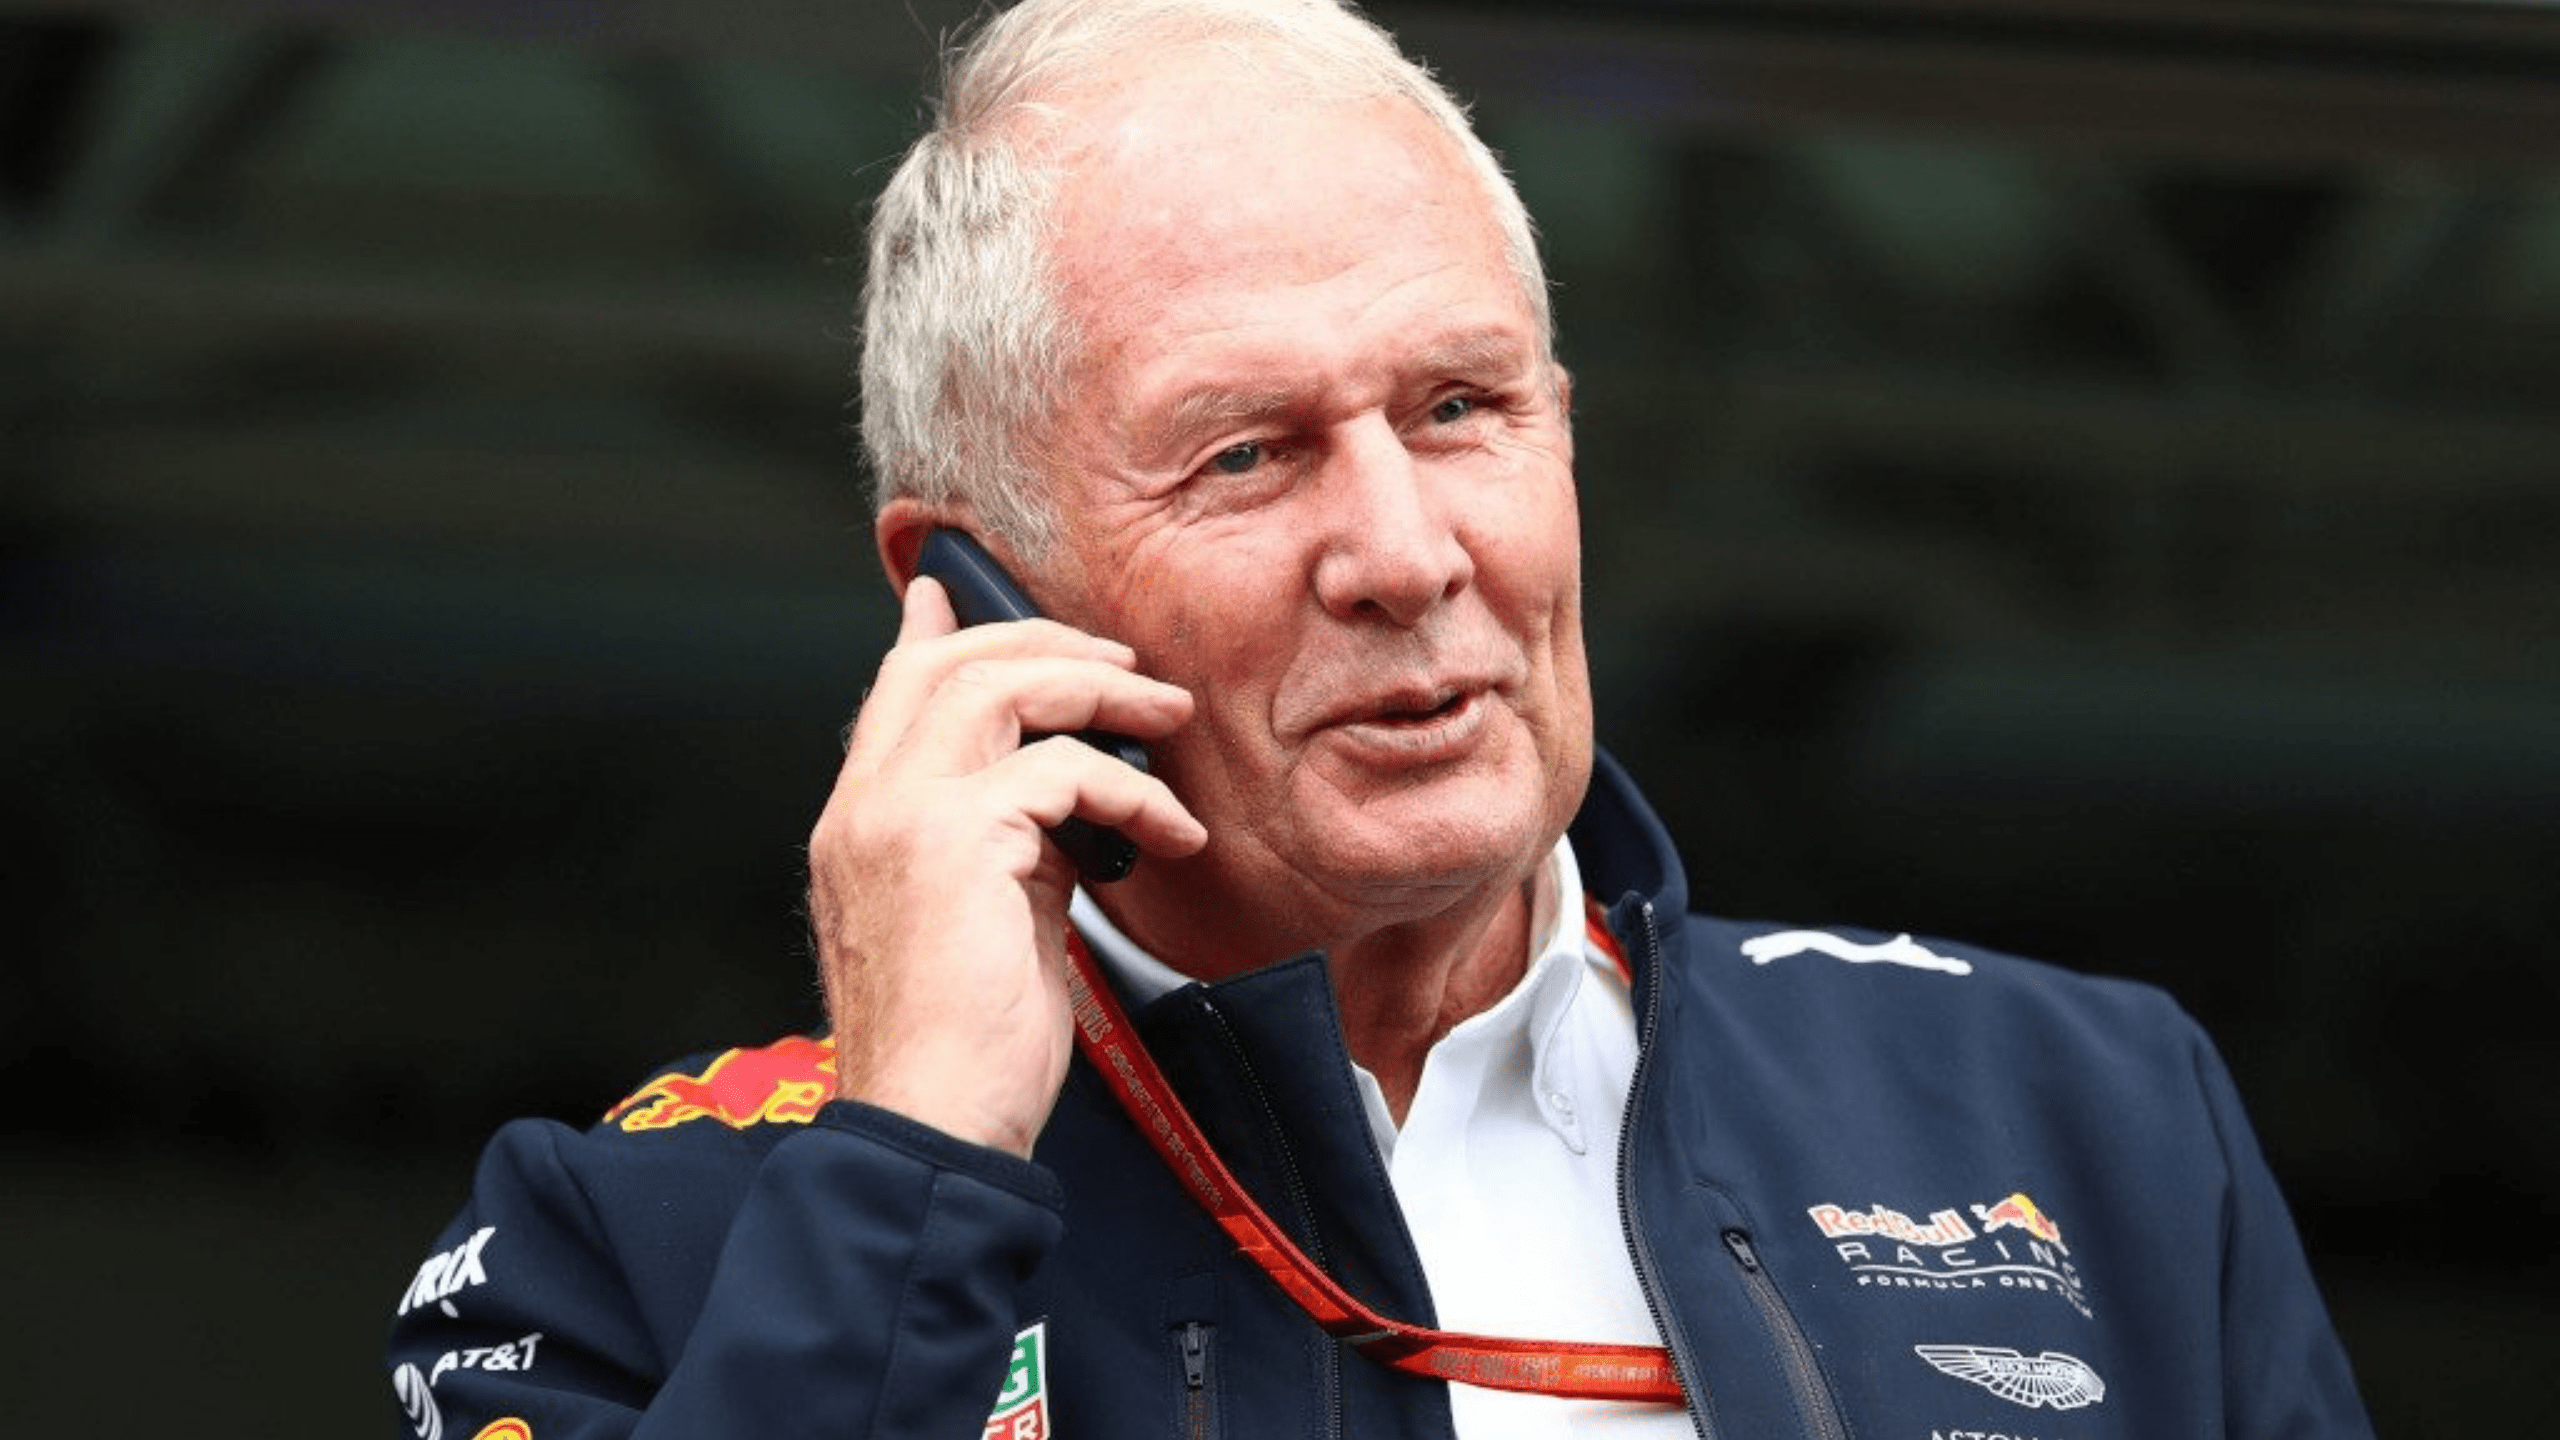 Sergio Perez to Red Bull: Dr. Helmut Marko sent Mexican driver congratulatory message after Sakhir GP win